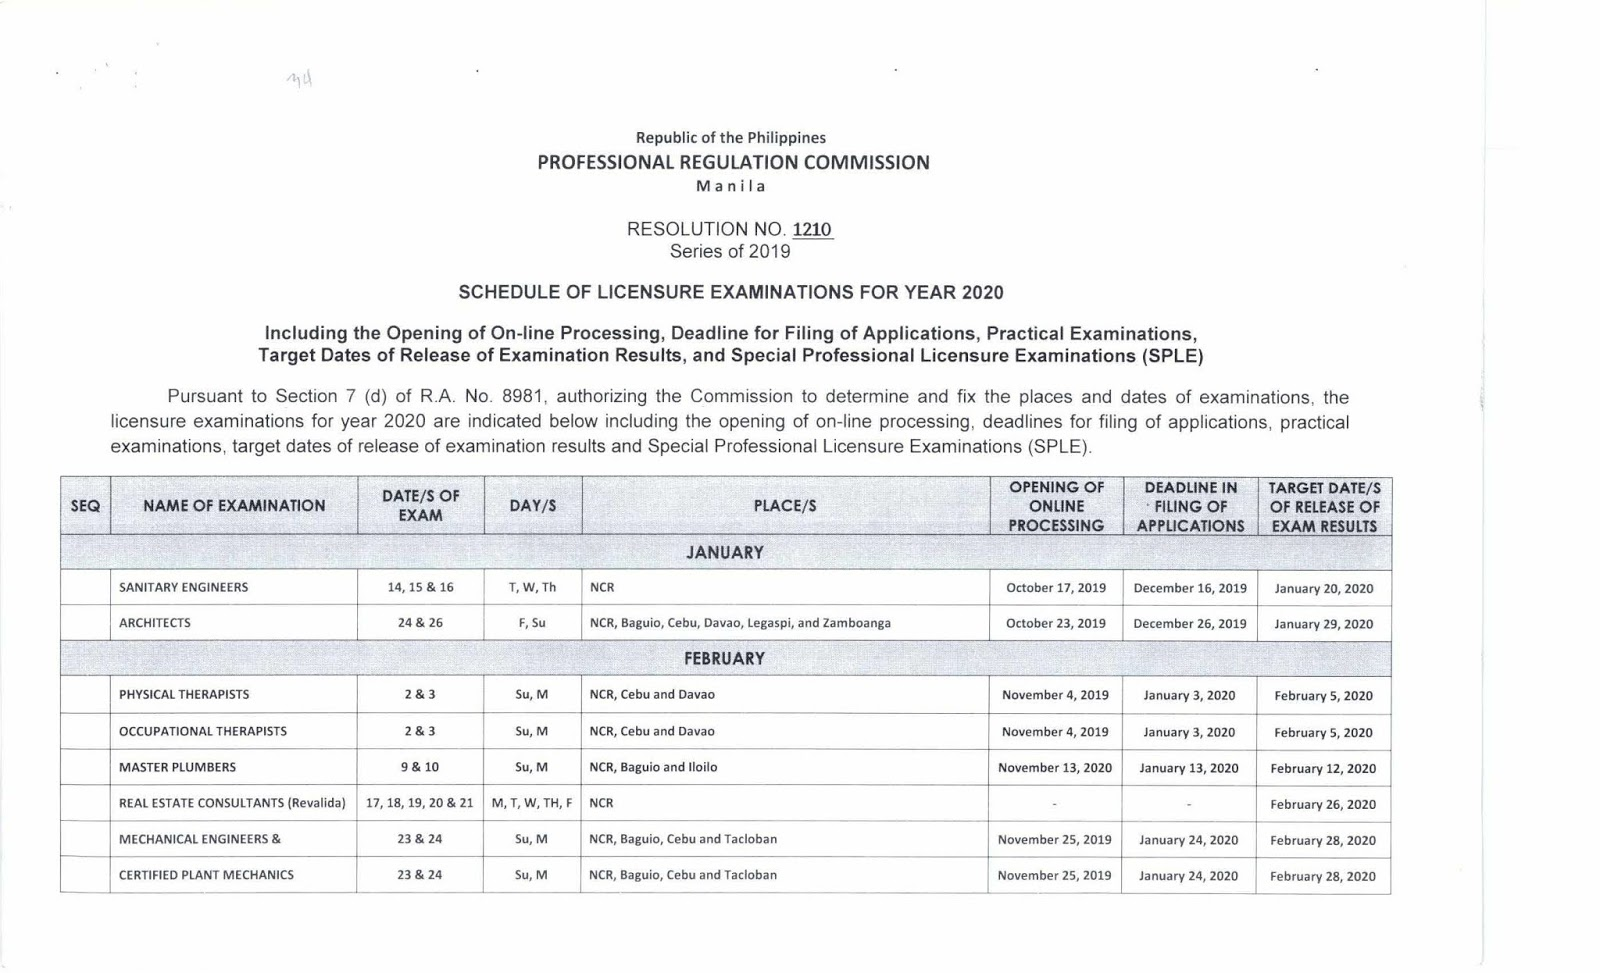 2020 Prc Board Licensure Exam Schedule Online Application Deadline Of Filing Prcboard Com